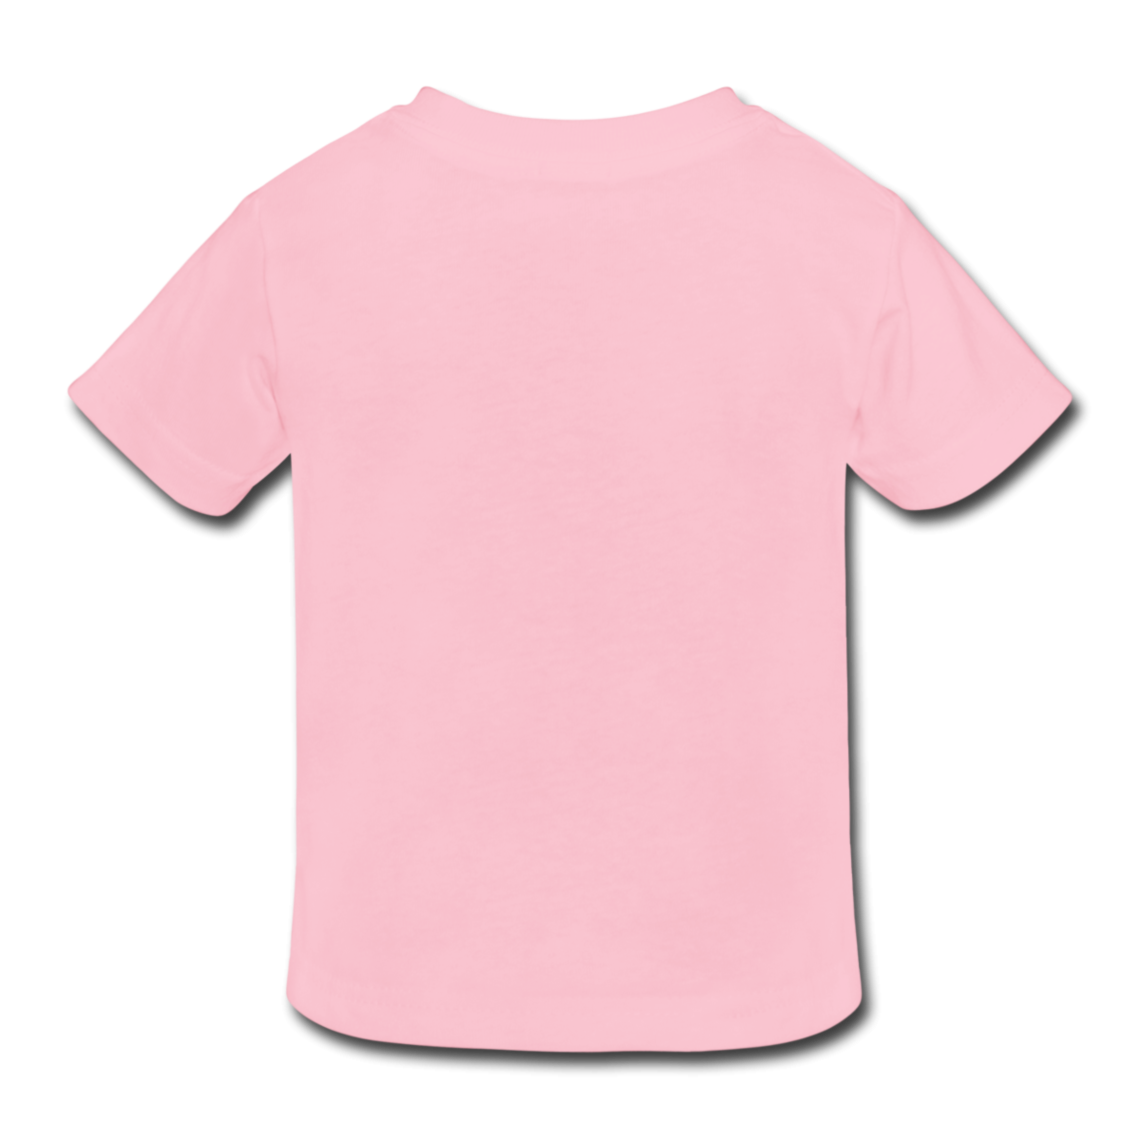 Shirt clipart pink shirt T Free Free Toddler Art